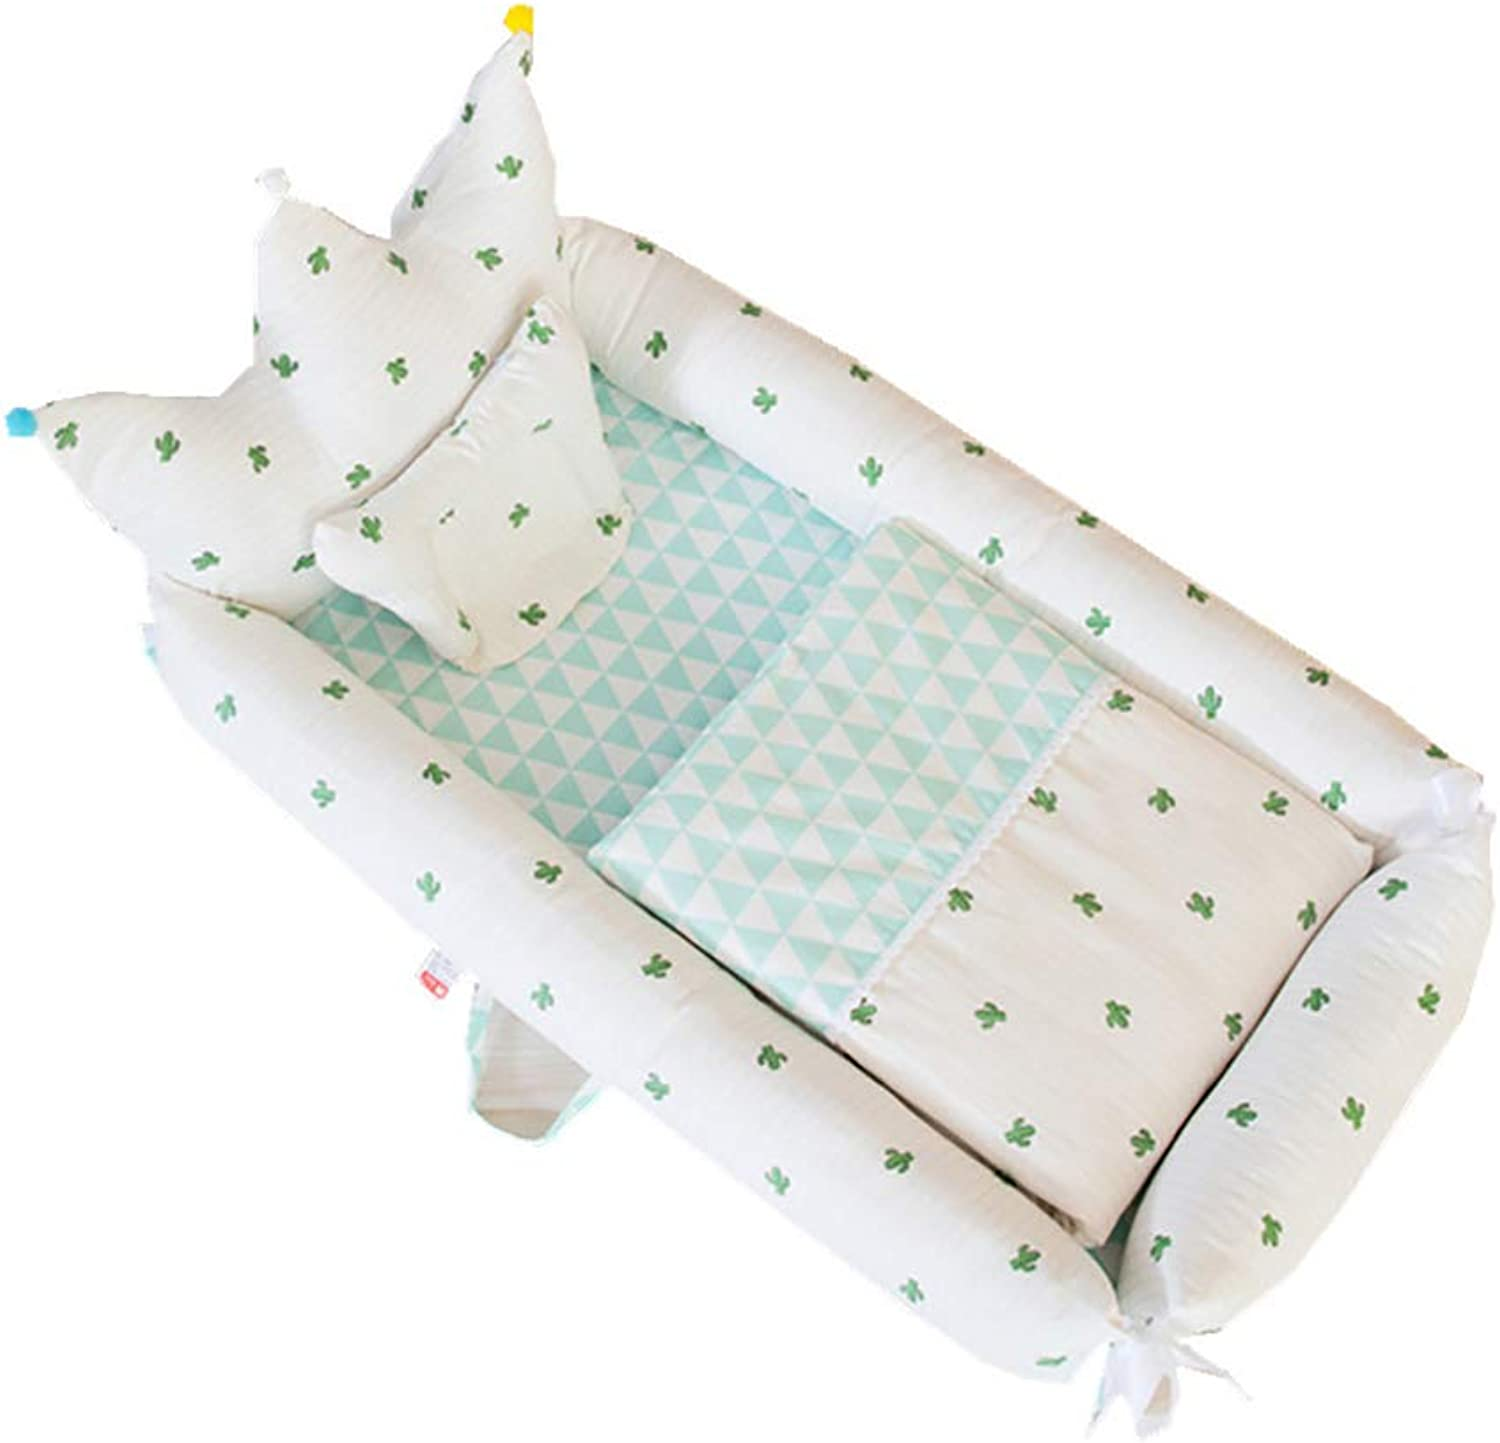 Baby Lounger Baby Bassinet for Bed Crown Shape Breathable Hypoallergenic Portable Crib for Travel Newborn Super Soft 100% Cotton